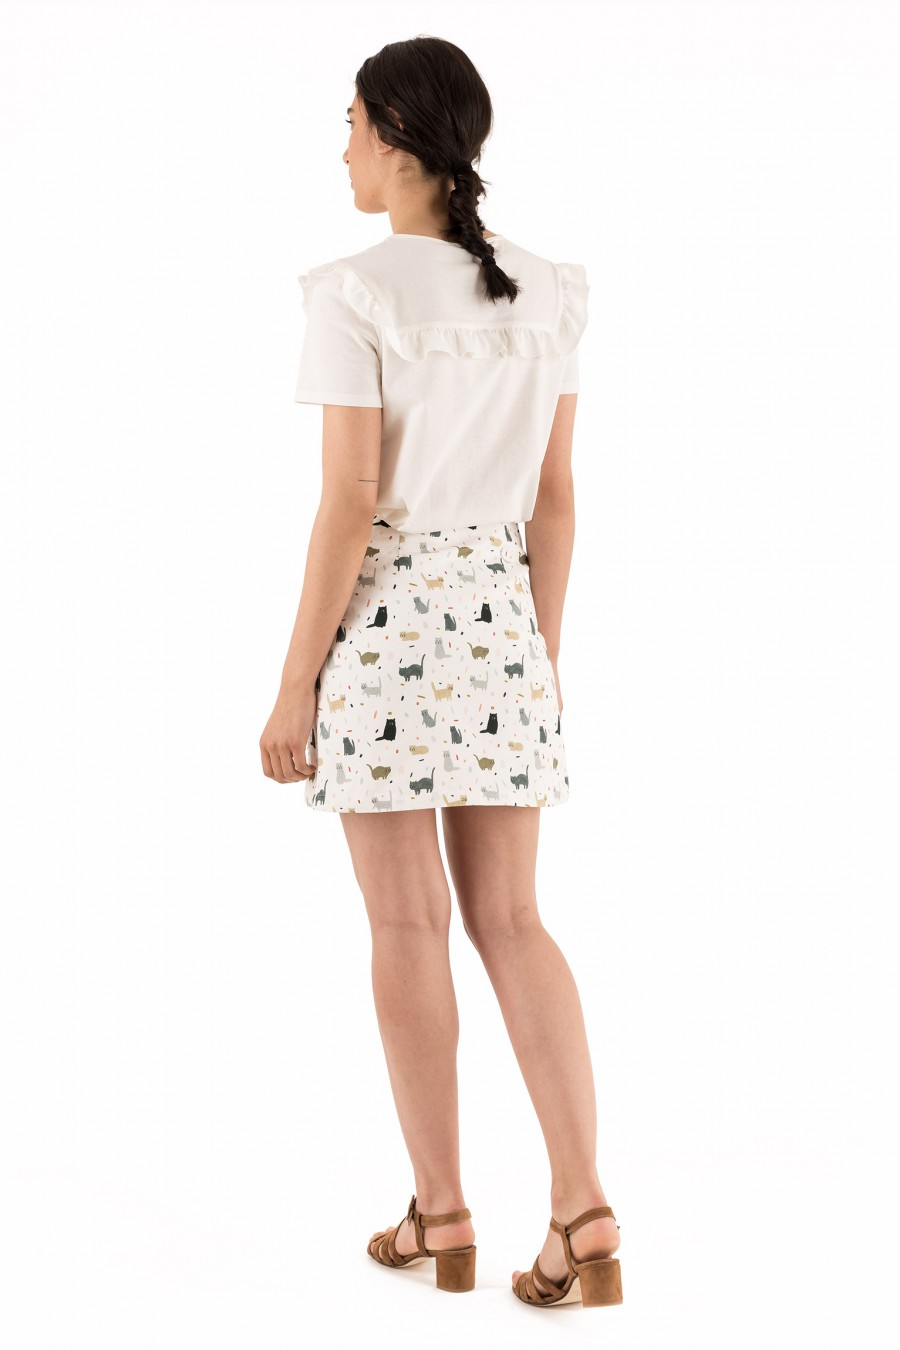 Short skirt with cats